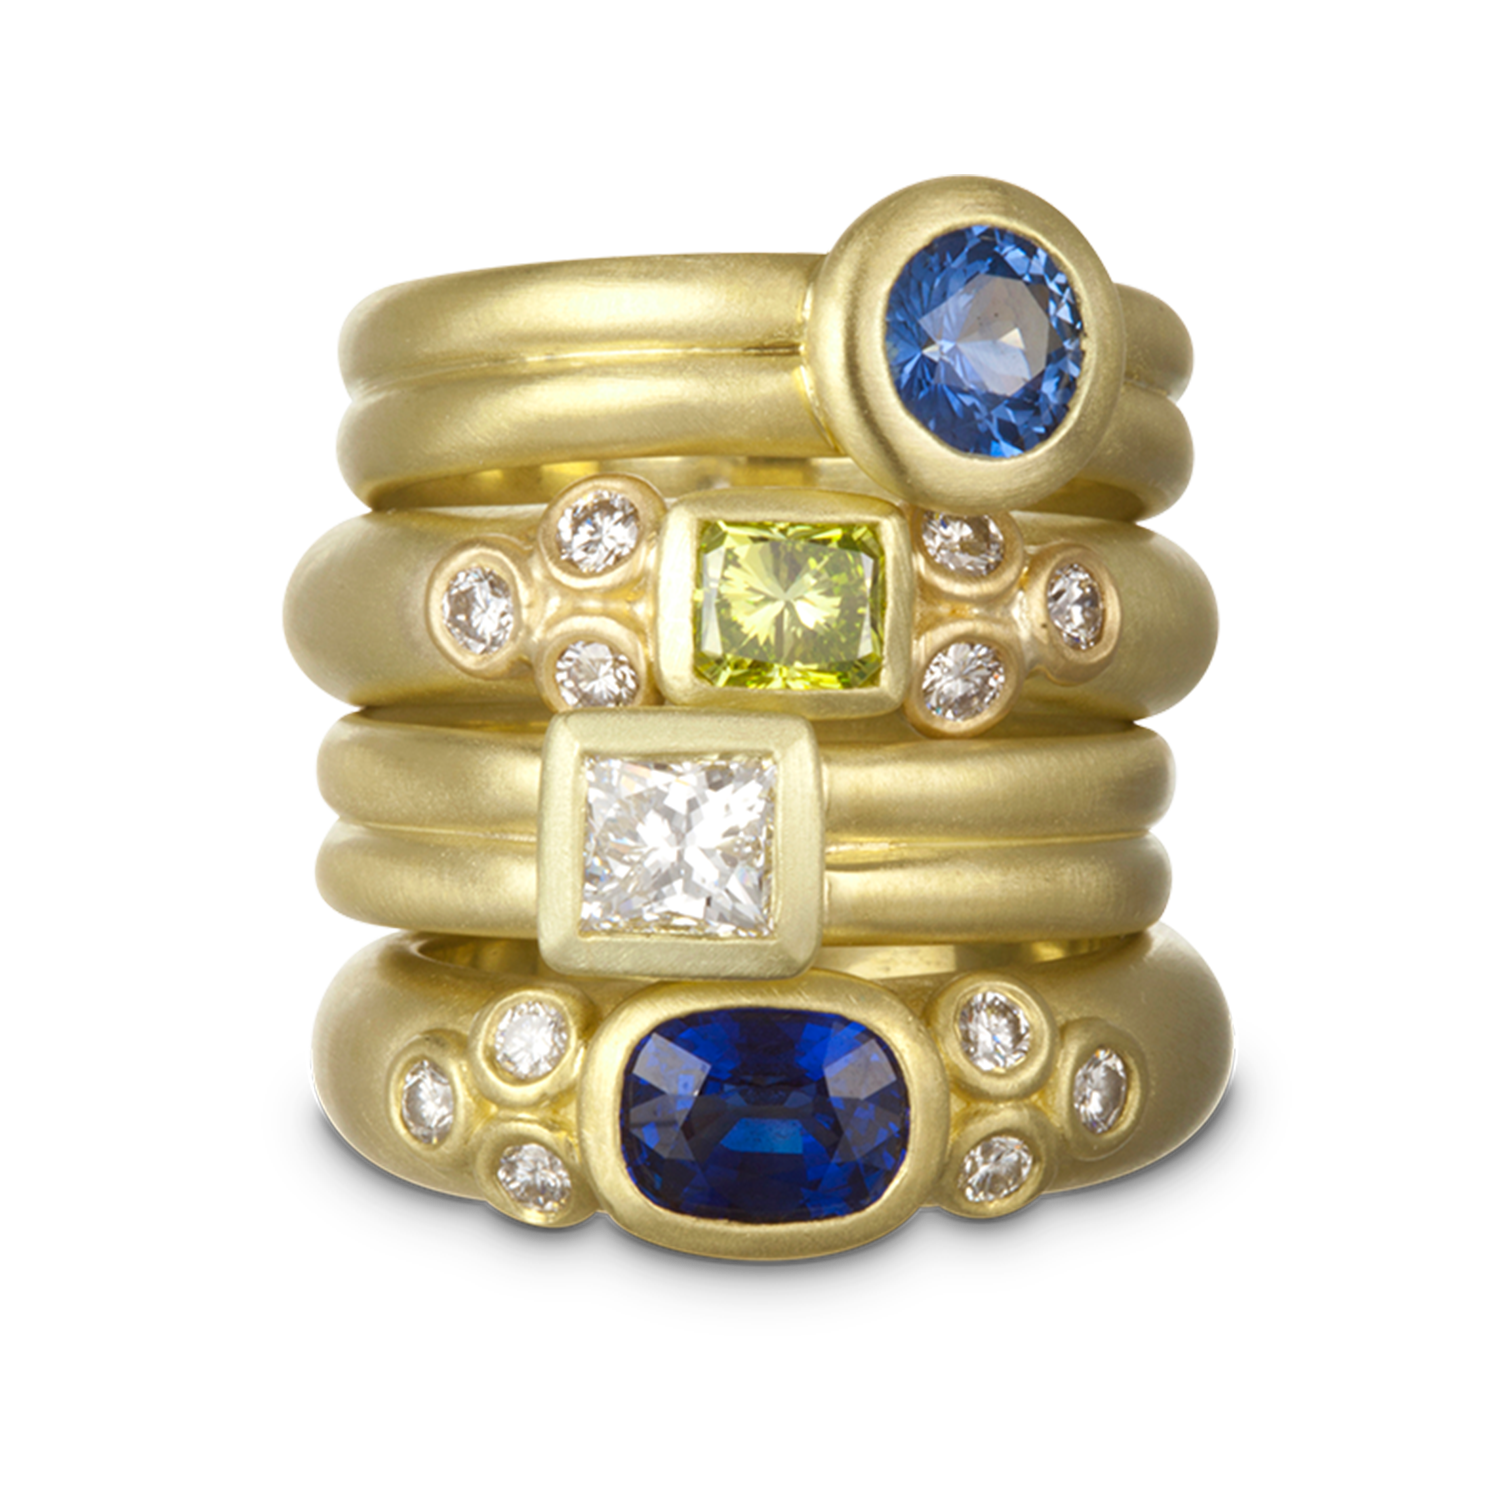 Diamond and Sapphire Stack Rings